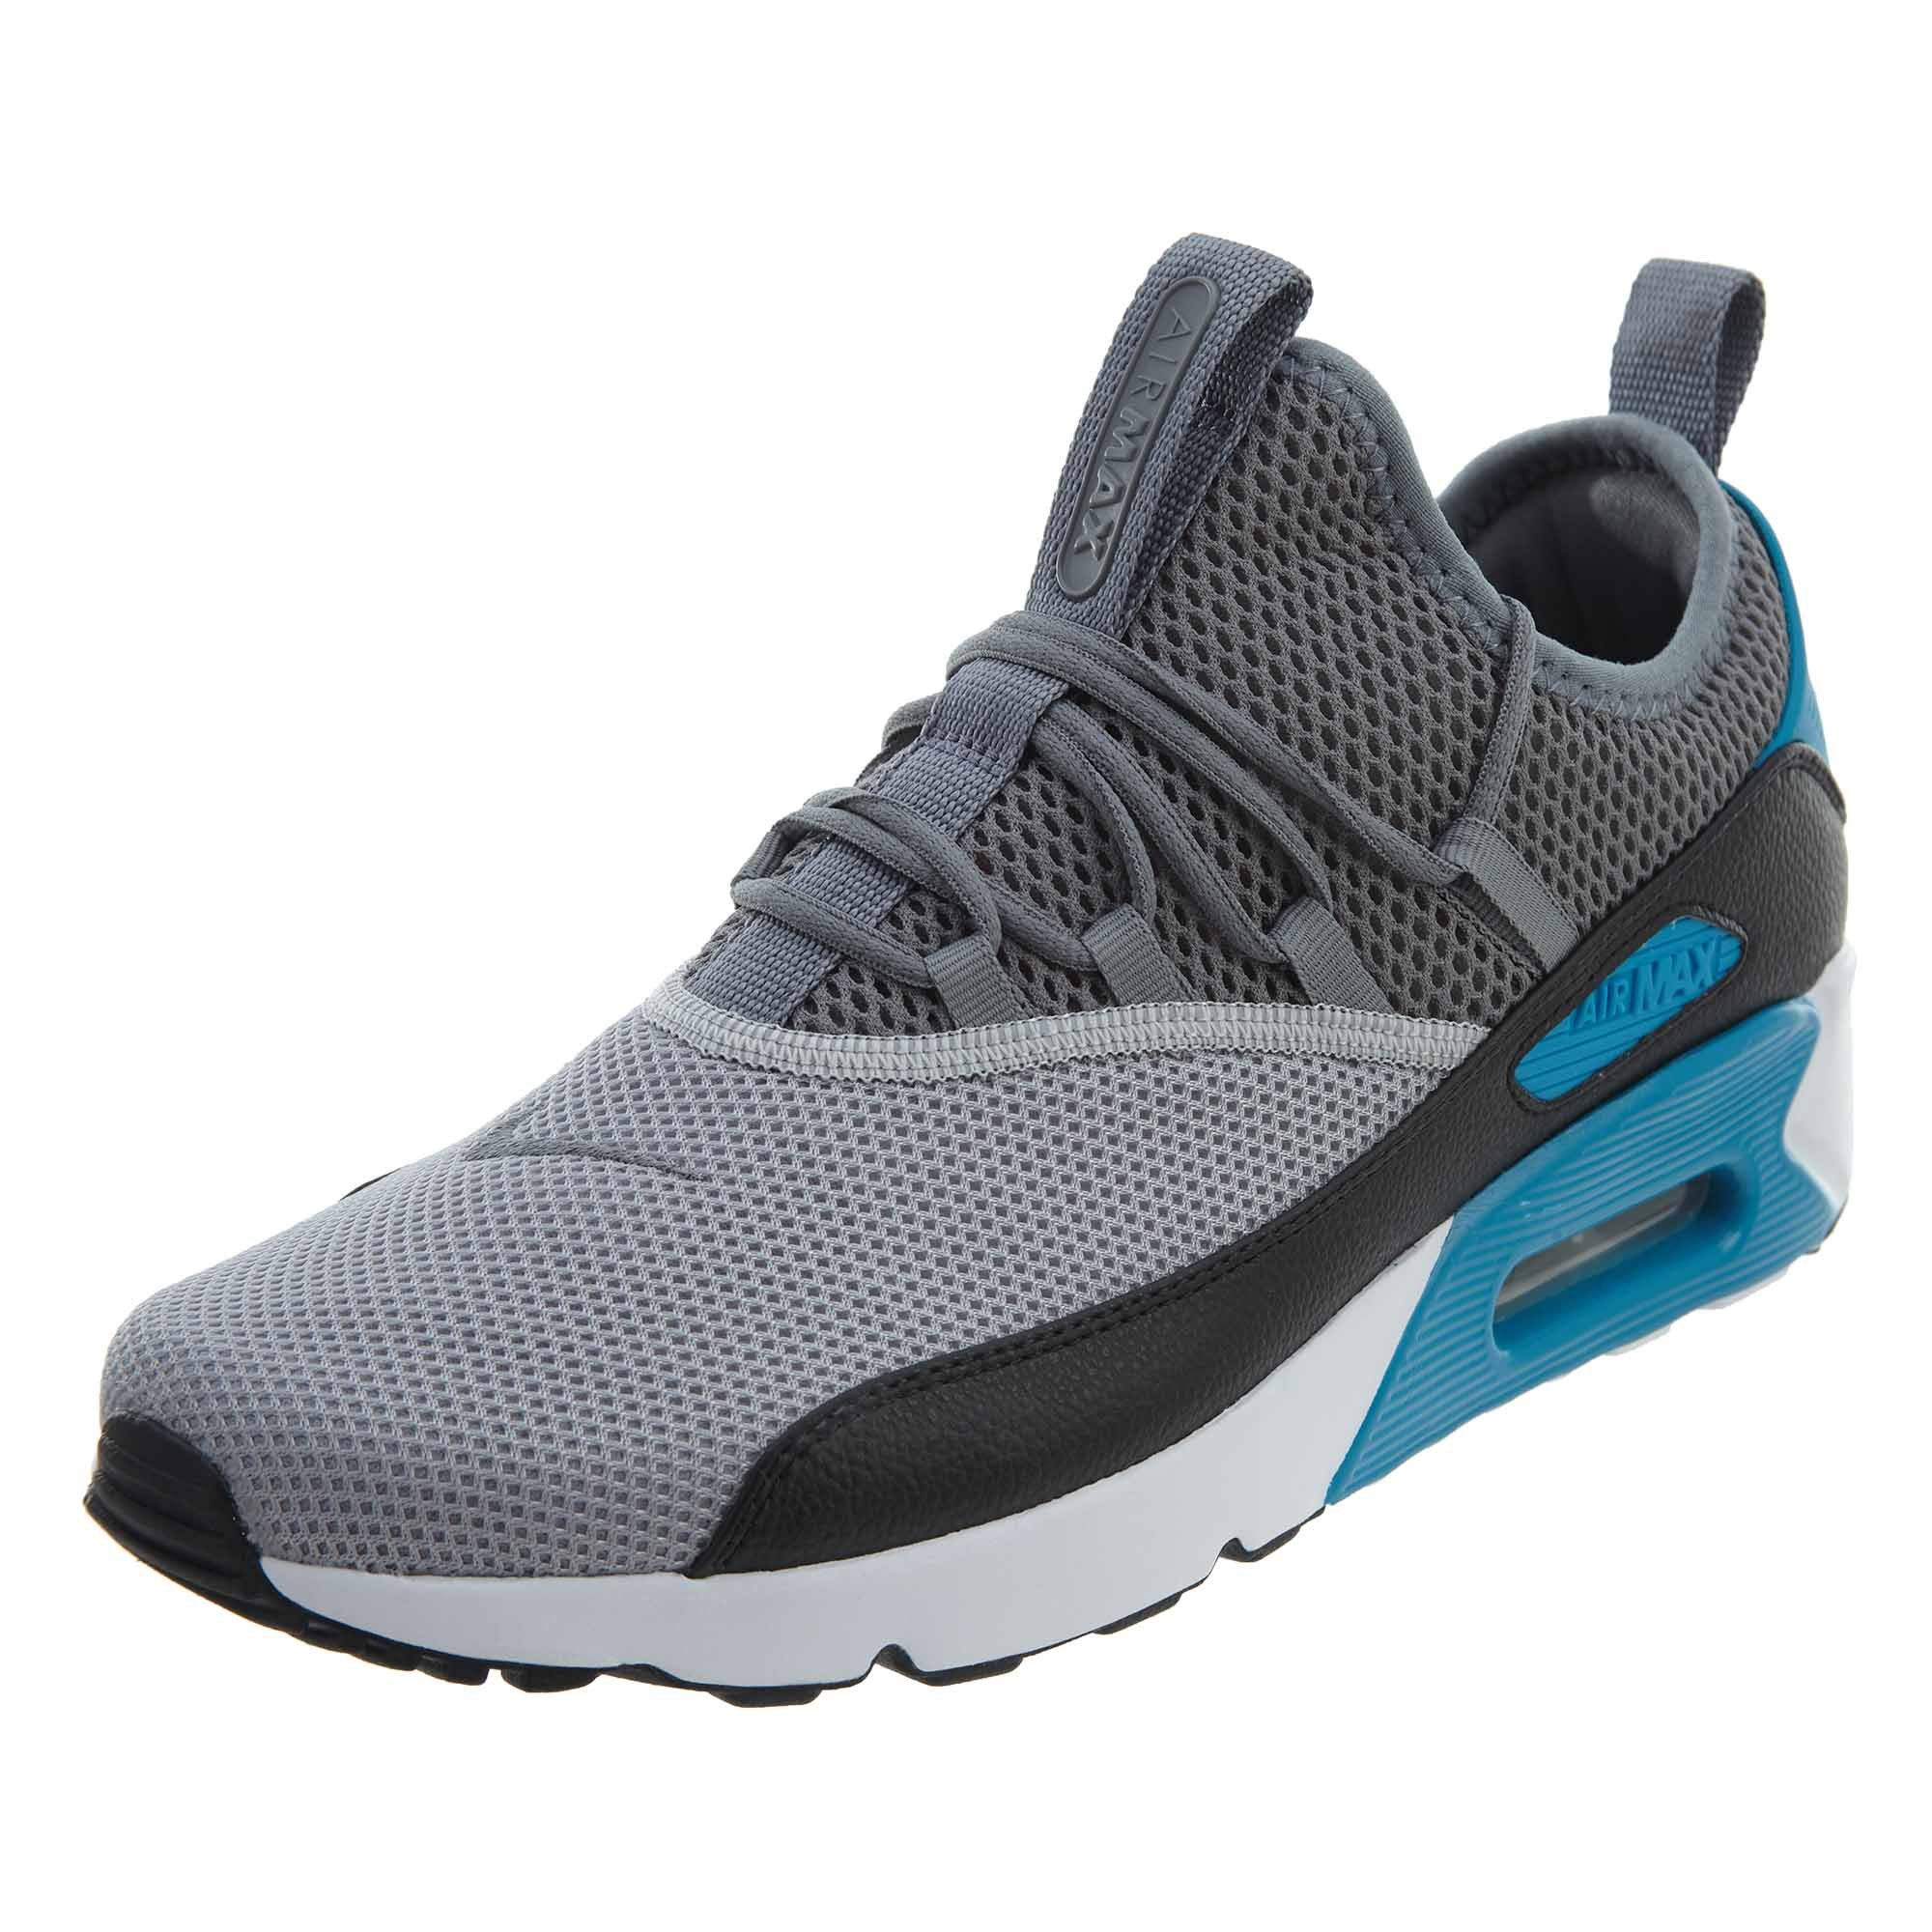 Nike Air Max 90 EZ Mens AO1745 004 Laser Blue Grey Black Running Shoes Size 12